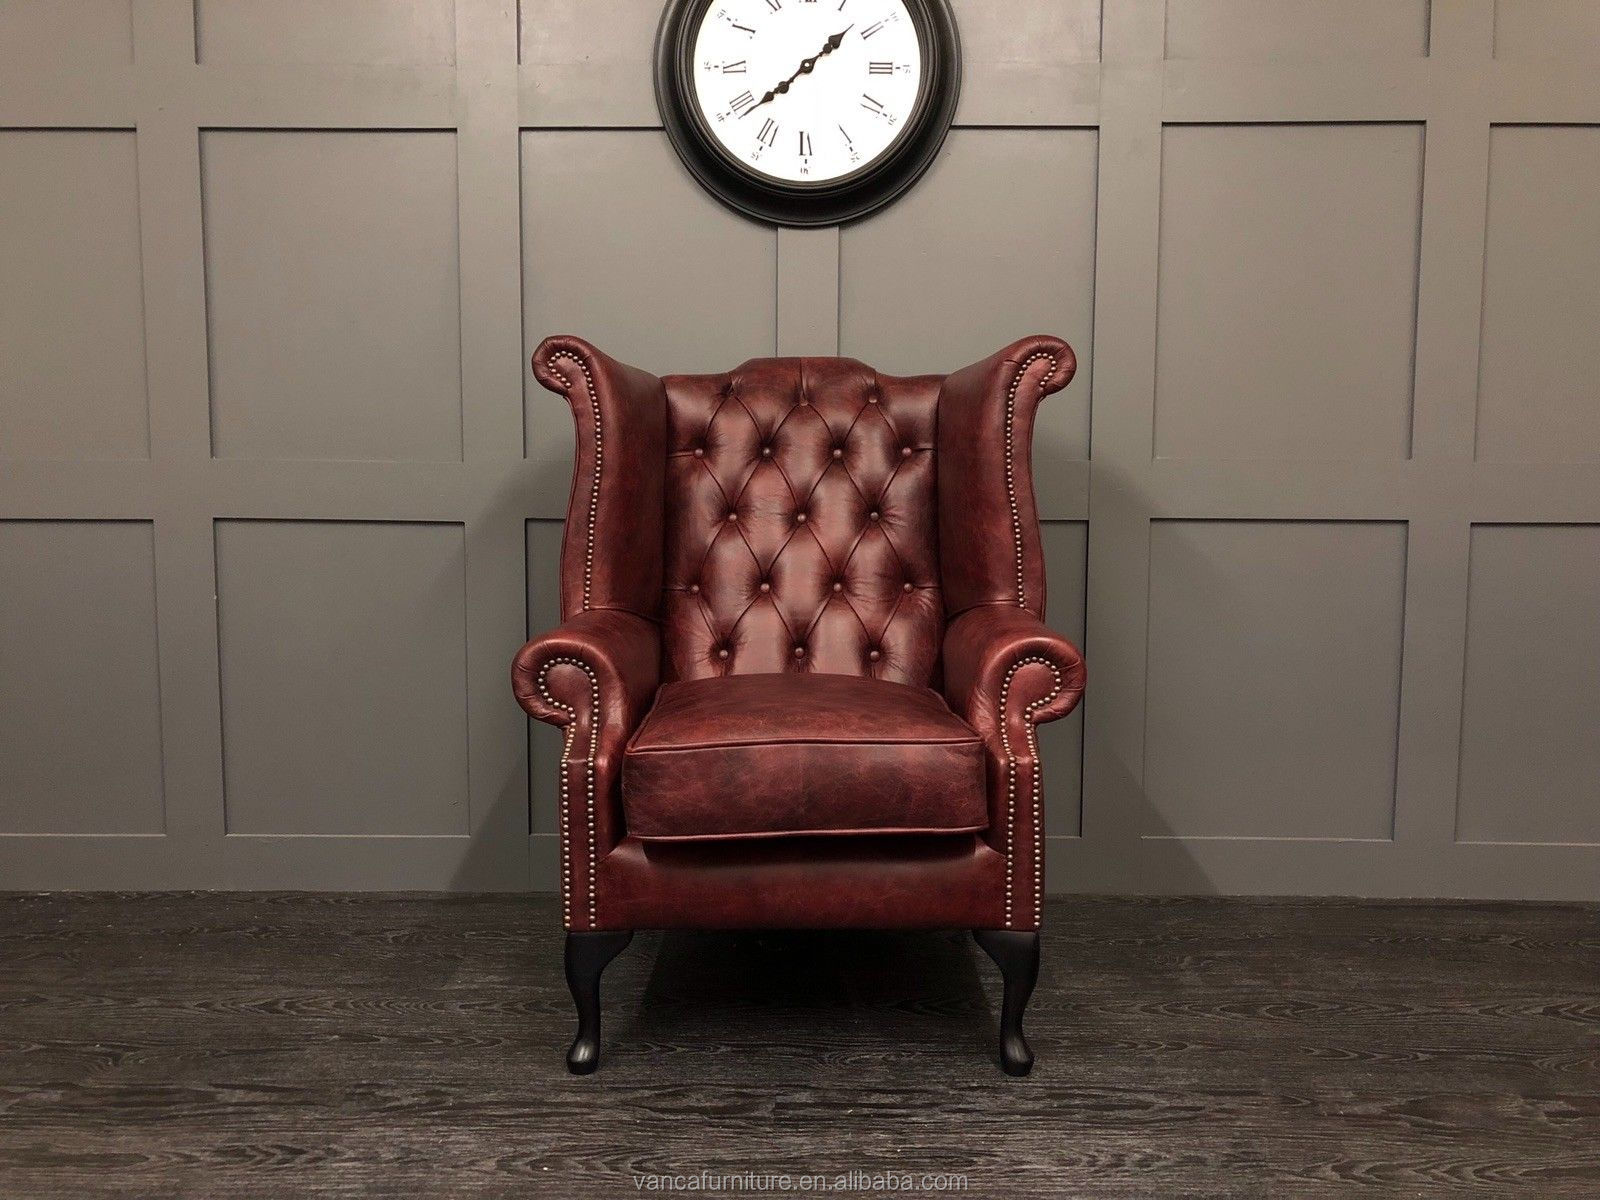 Chesterfield Queen Anne High Back Wing Chair Chesterfield Queen Anne High Back Wing Chair Suppliers and Manufacturers at Alibaba.com & Chesterfield Queen Anne High Back Wing Chair Chesterfield Queen ...